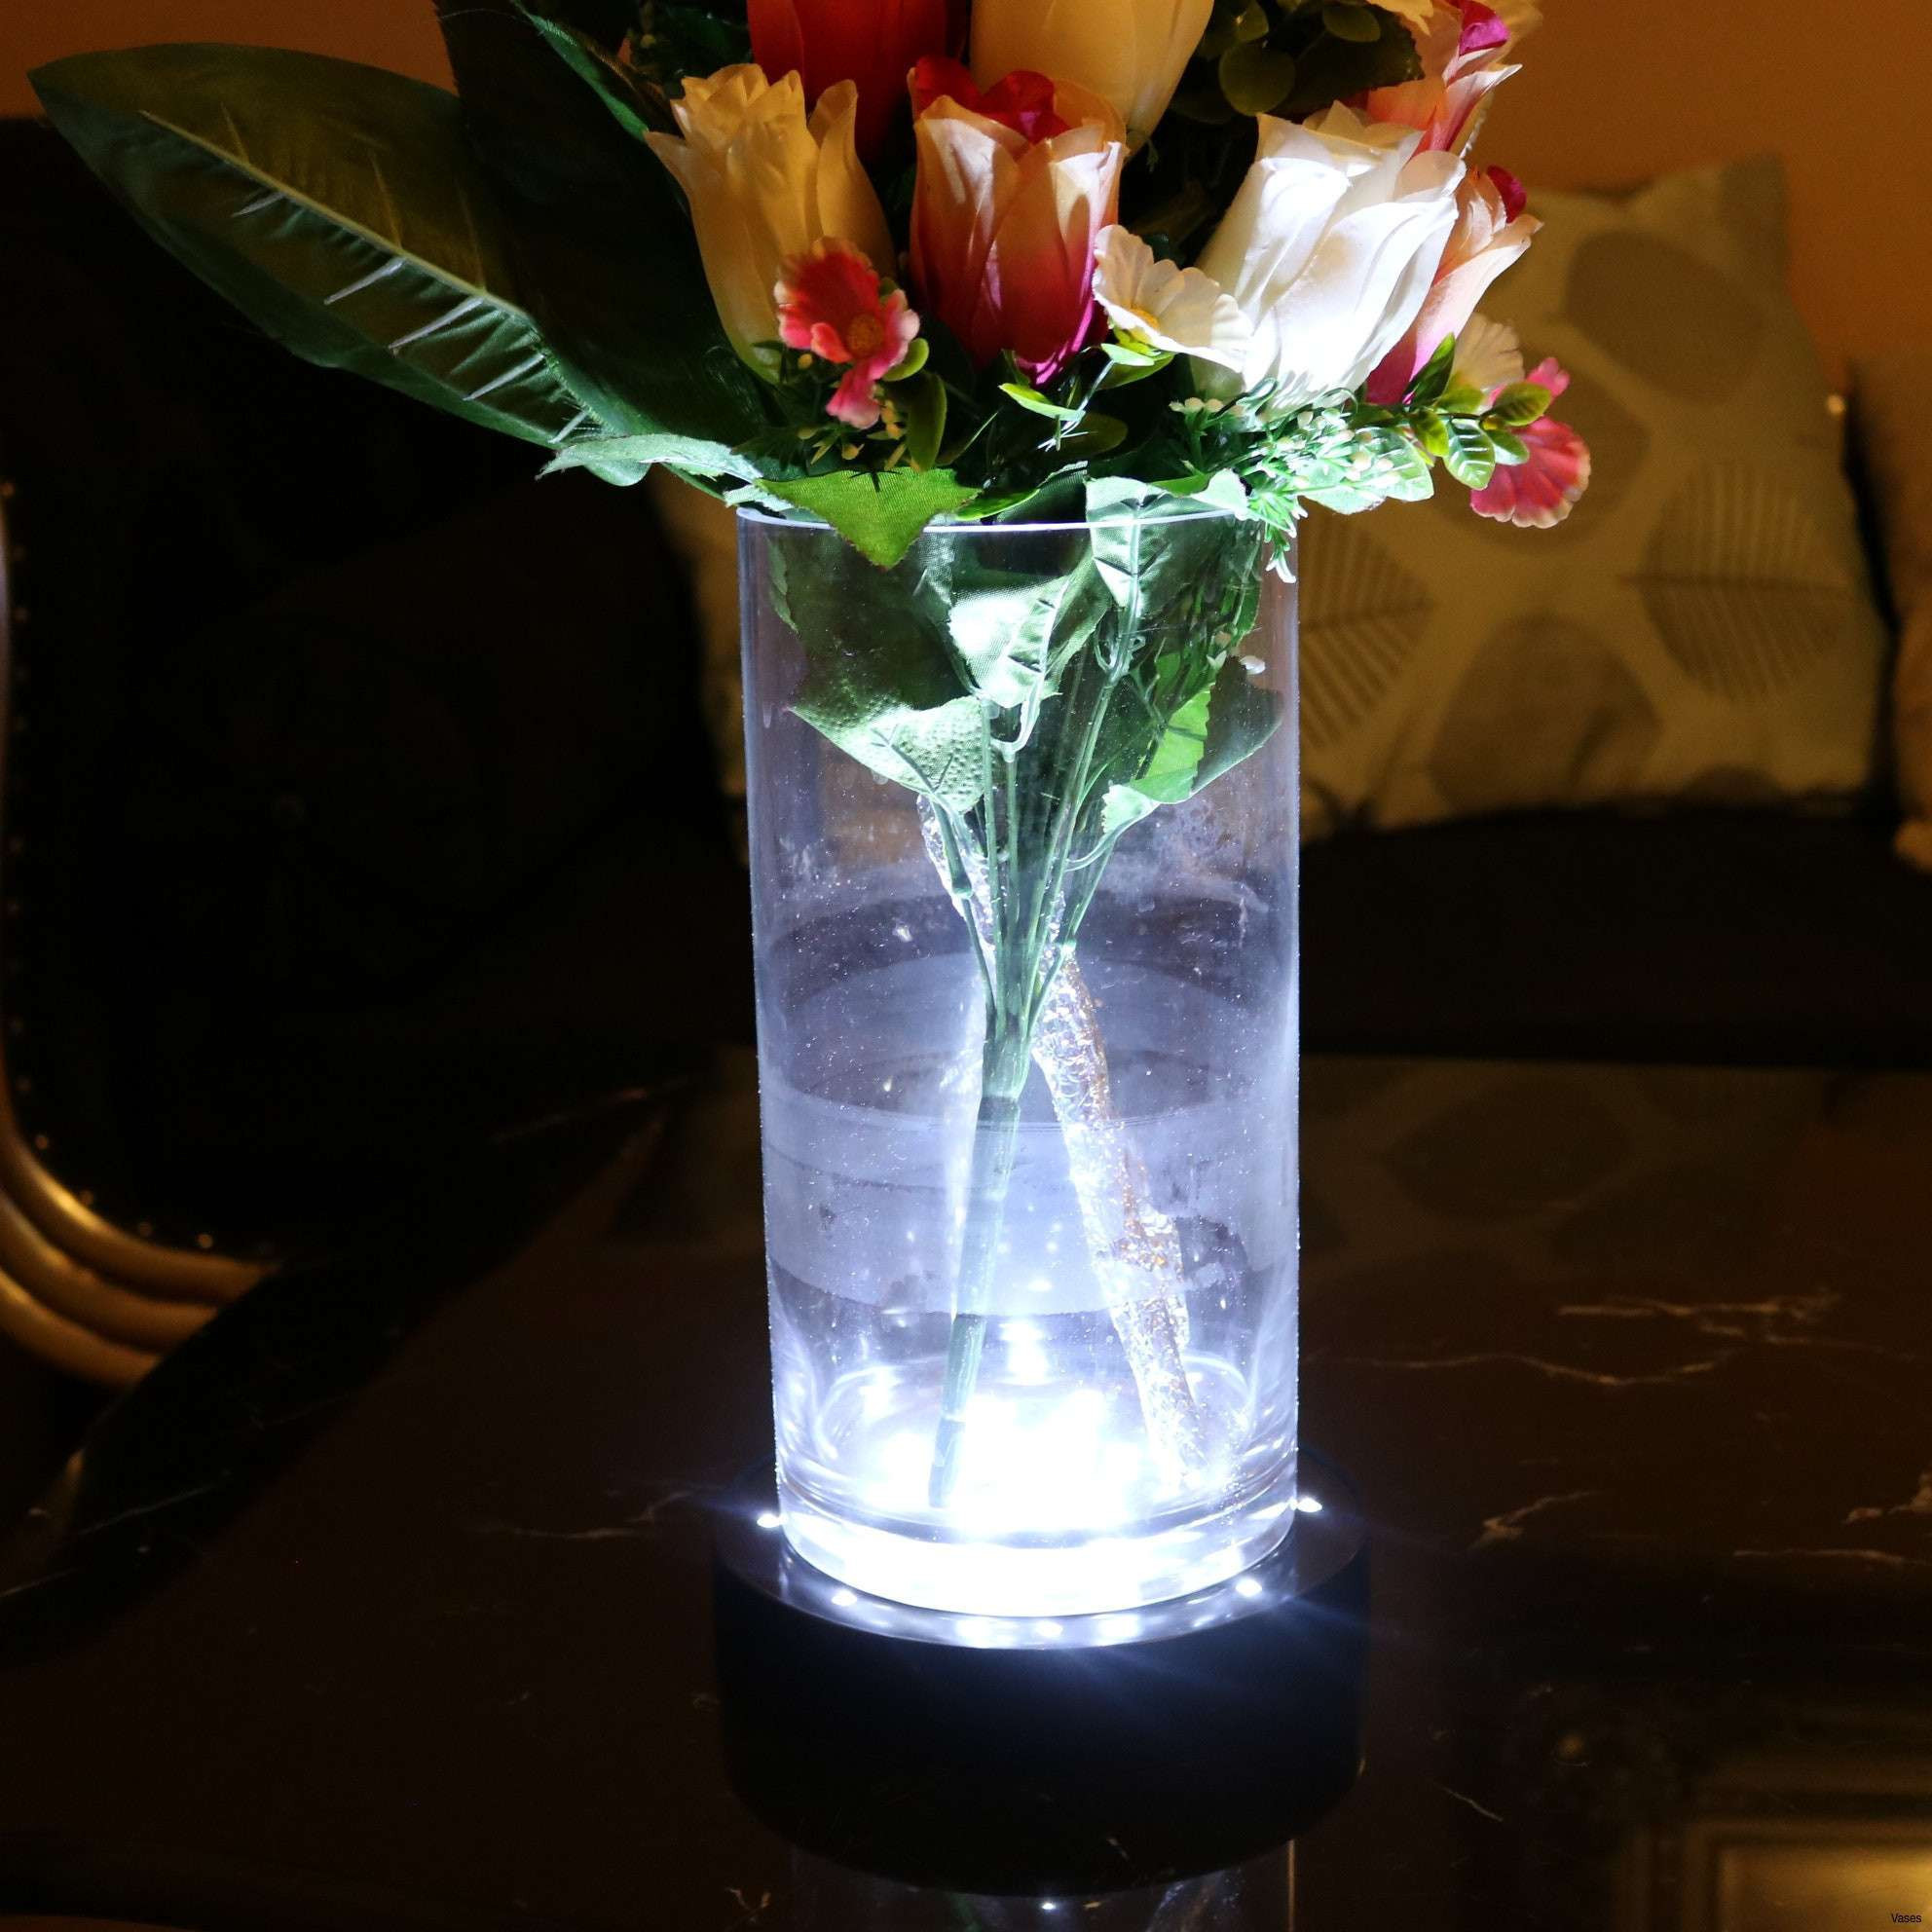 buy cheap cylinder vases in bulk of plastic cylinder vase image vases disposable plastic single cheap with regard to plastic cylinder vase image vases disposable plastic single cheap flower rose vasei 0d design